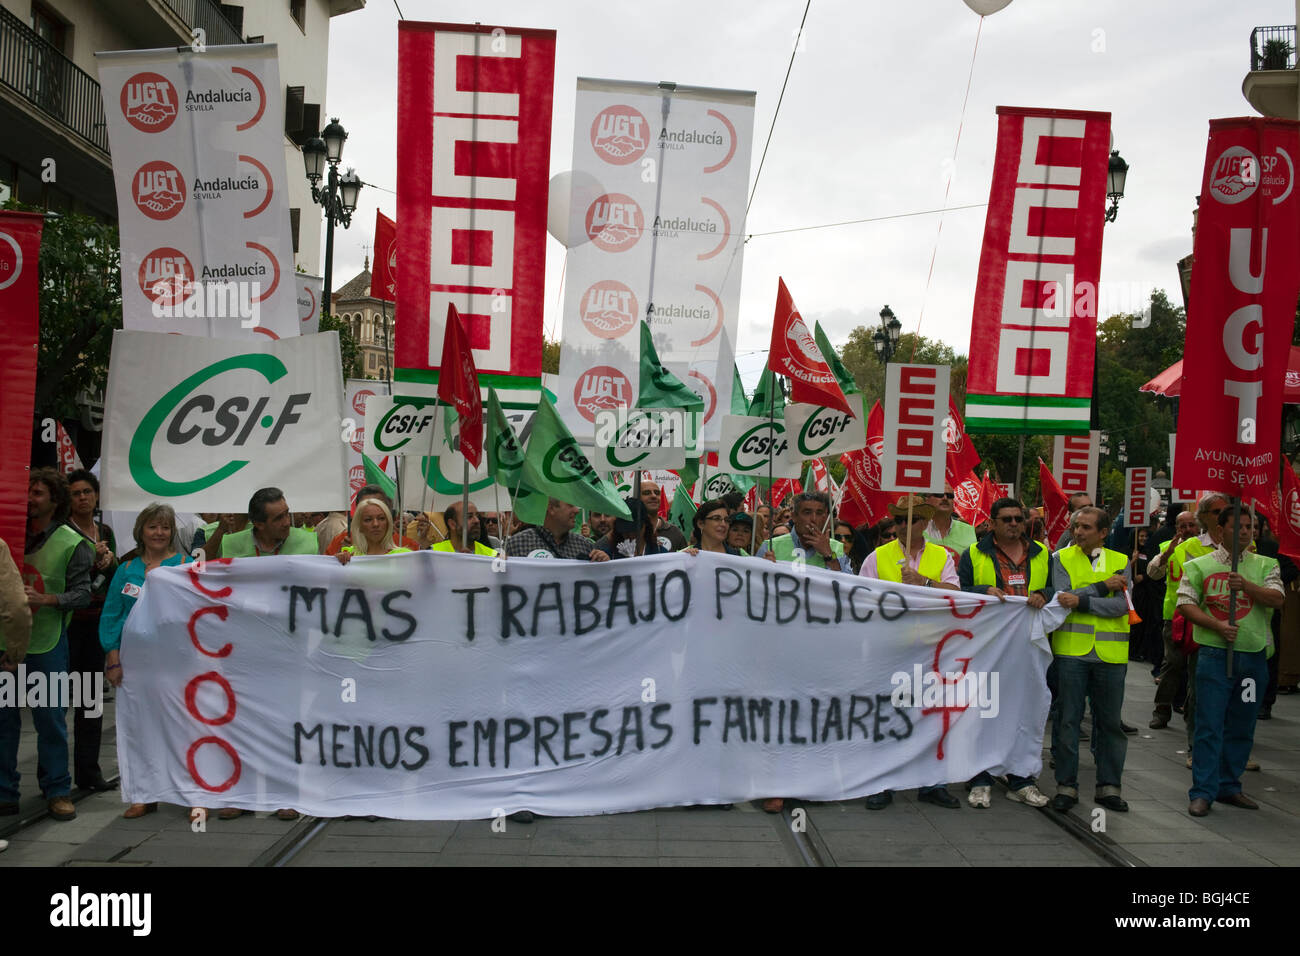 Trade unions march in Seville, Spain, protesting unemployment and asking for support for public jobs and less family - Stock Image